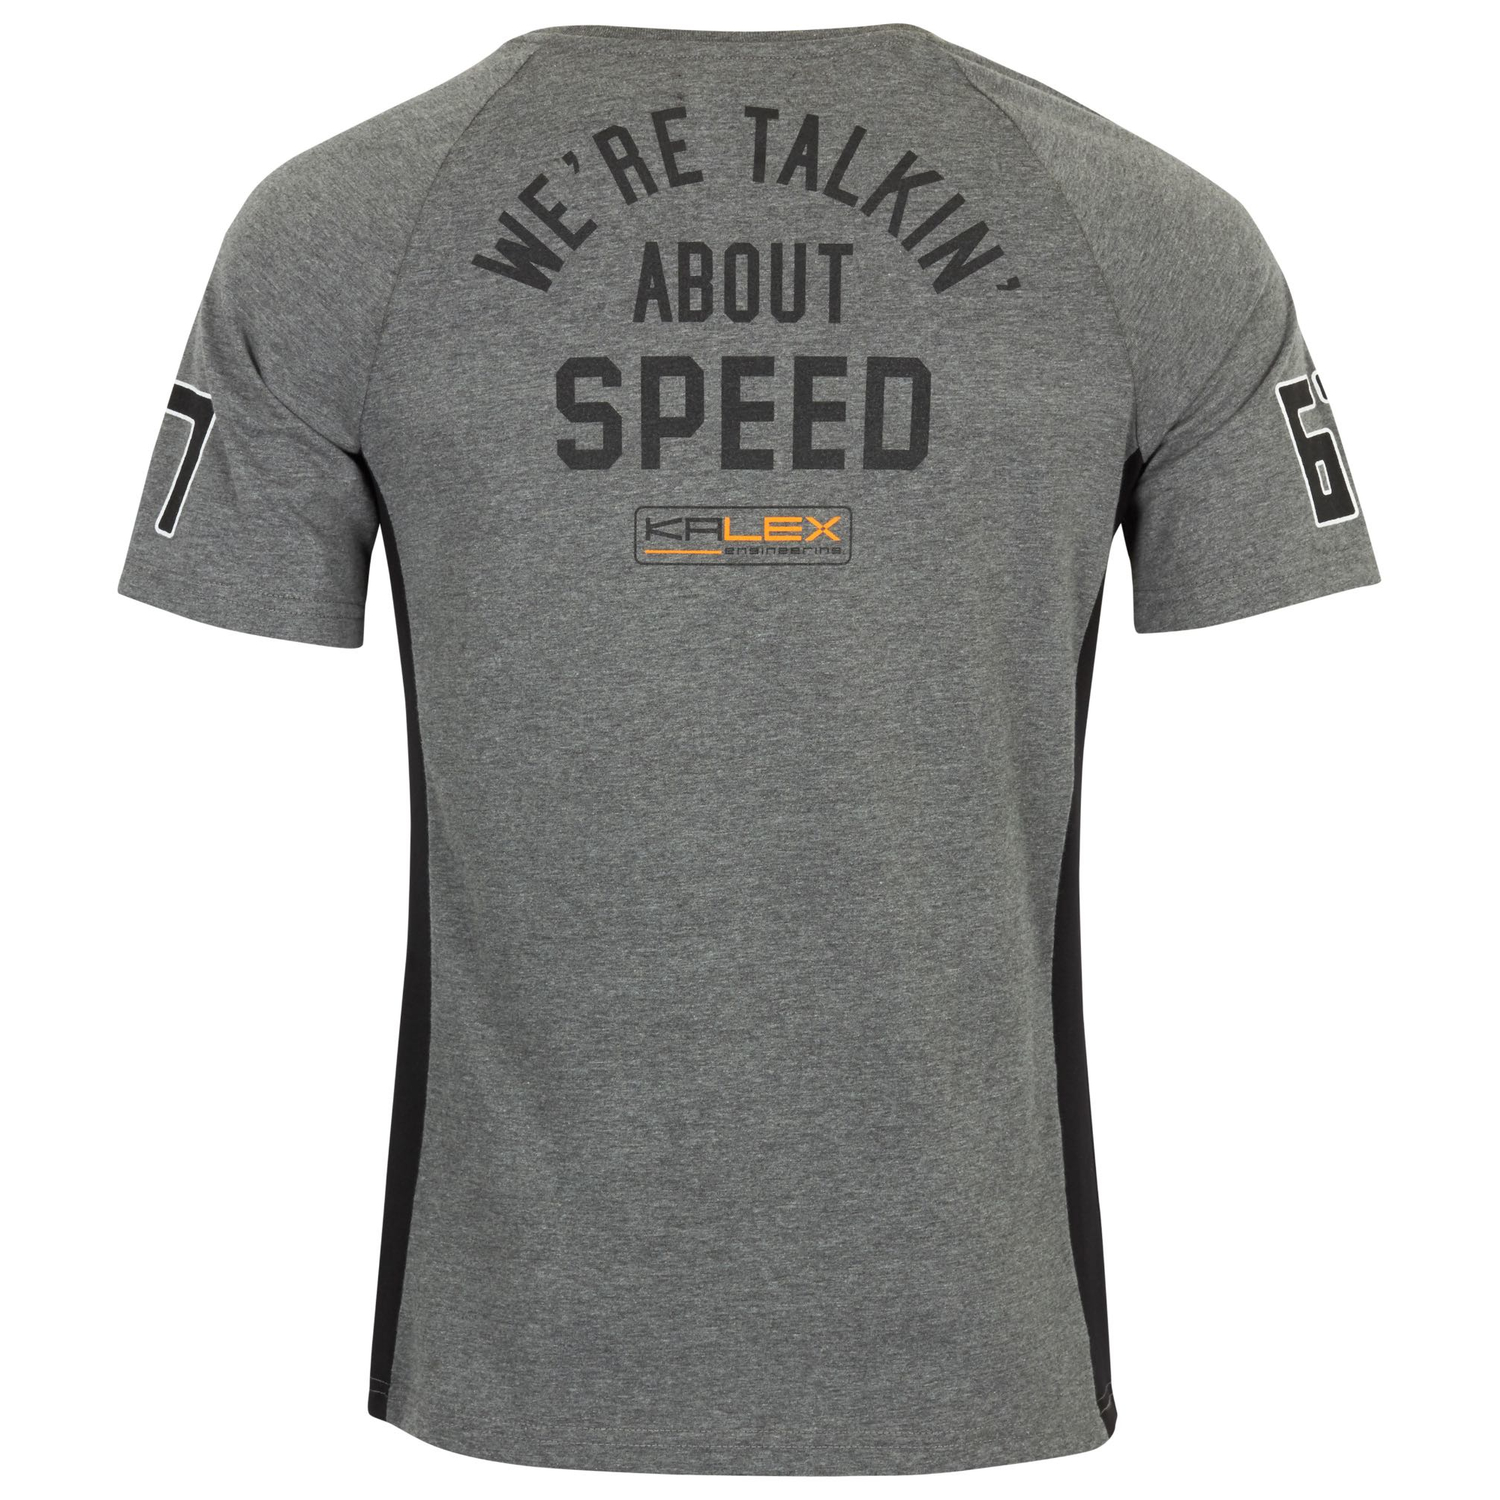 T-SHIRT SPEED DRUCK GRAU M